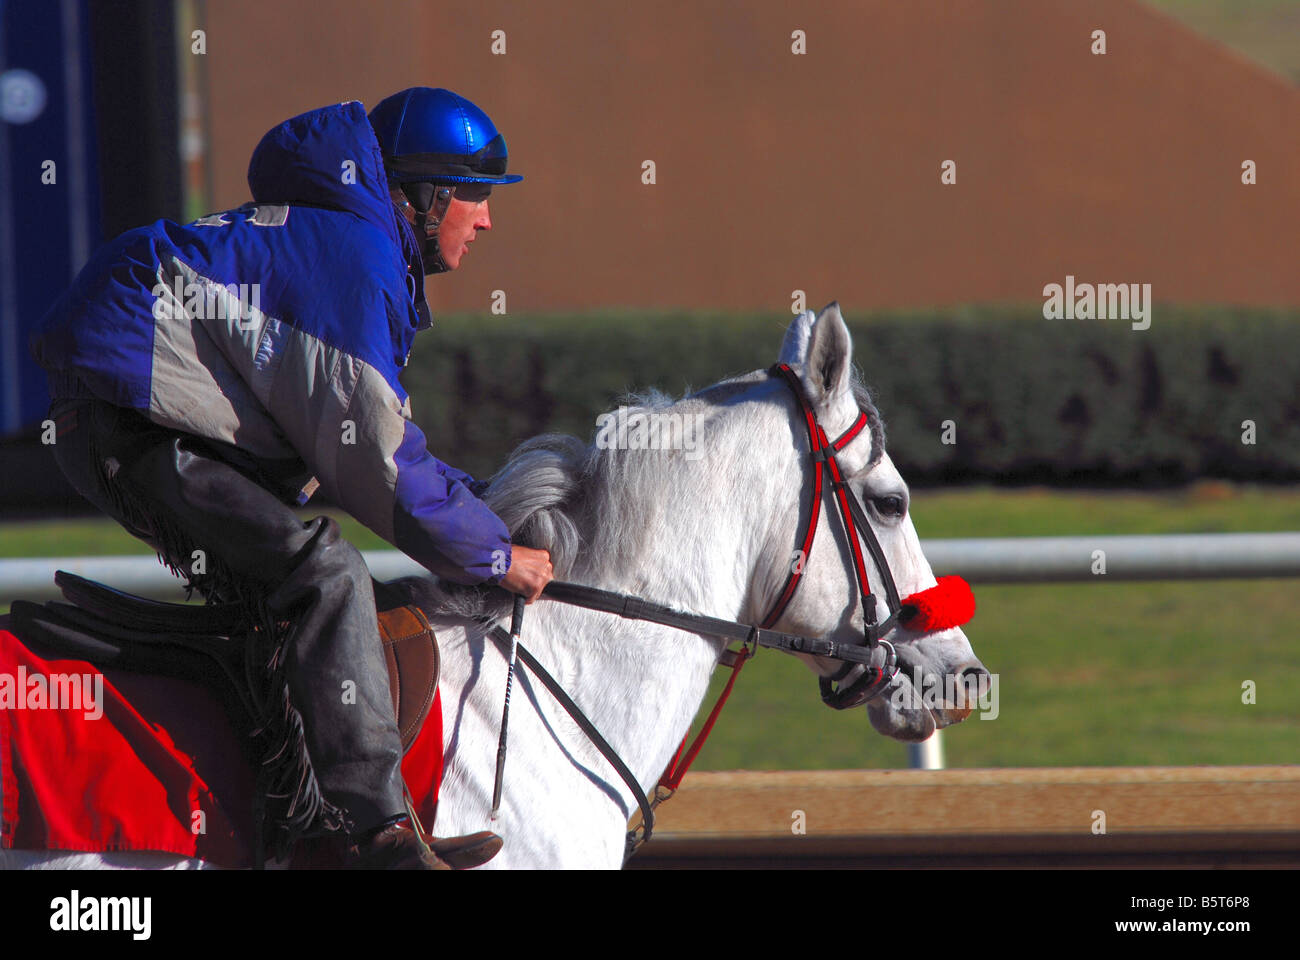 Jockey atop a horse after finishing a workout Stock Photo